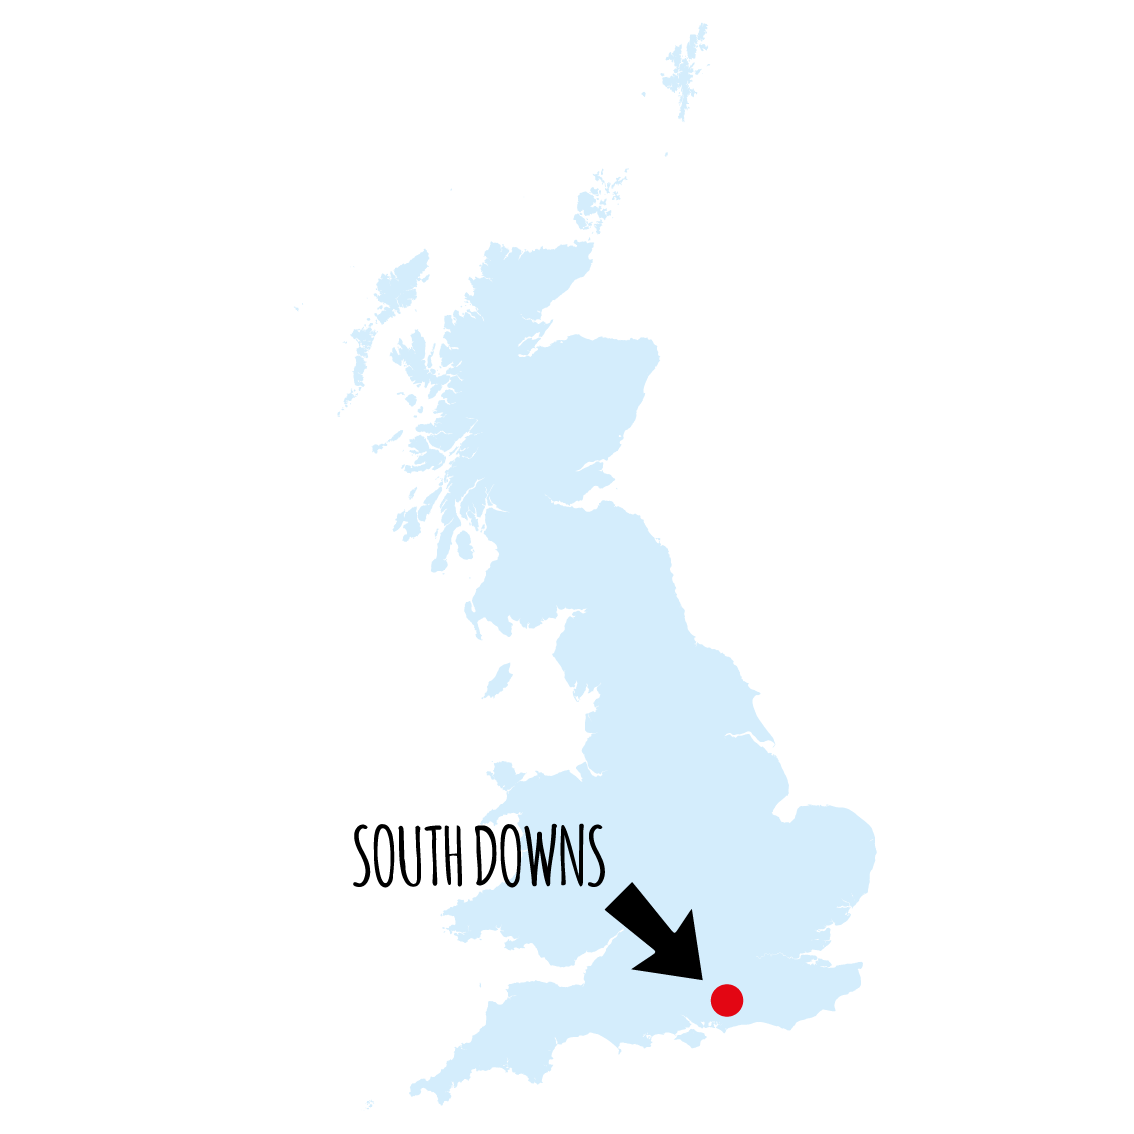 south-downs-map.png